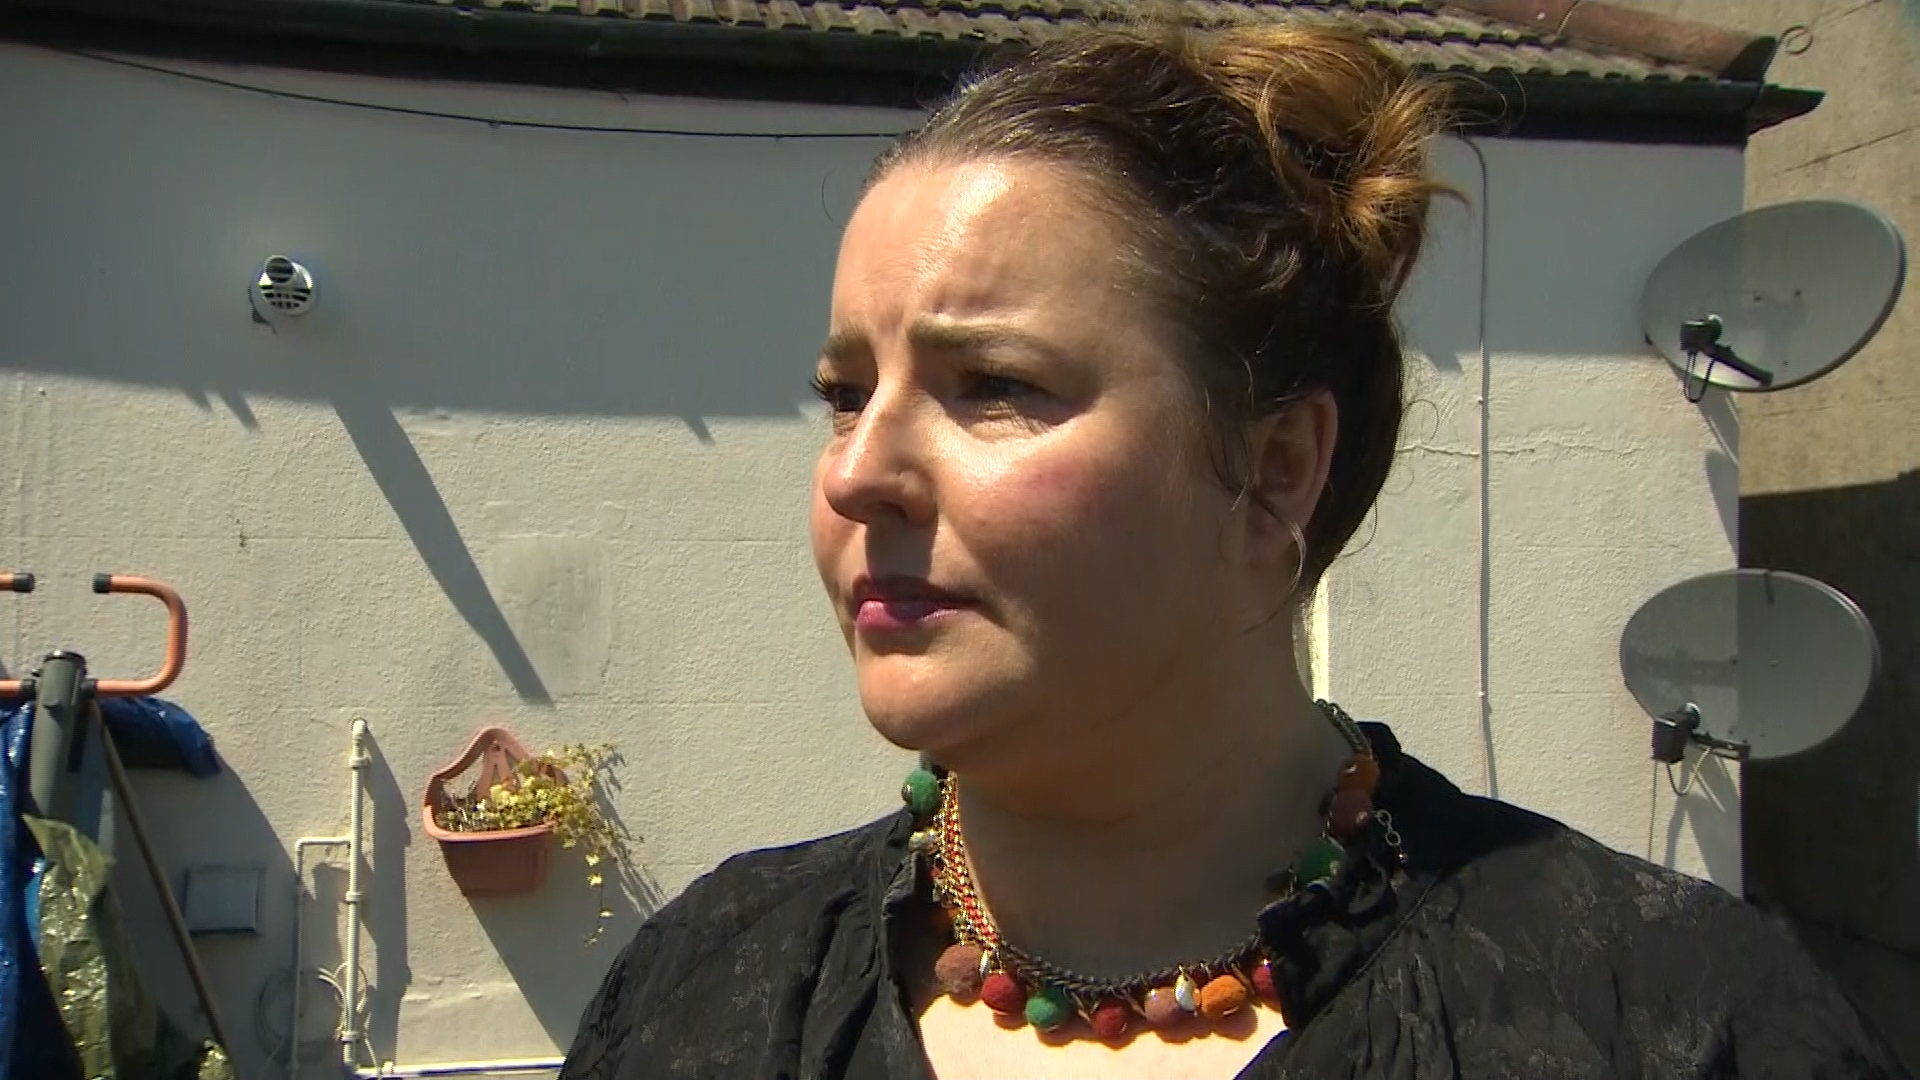 Tenants fear homelessness as pandemic eviction ban ends